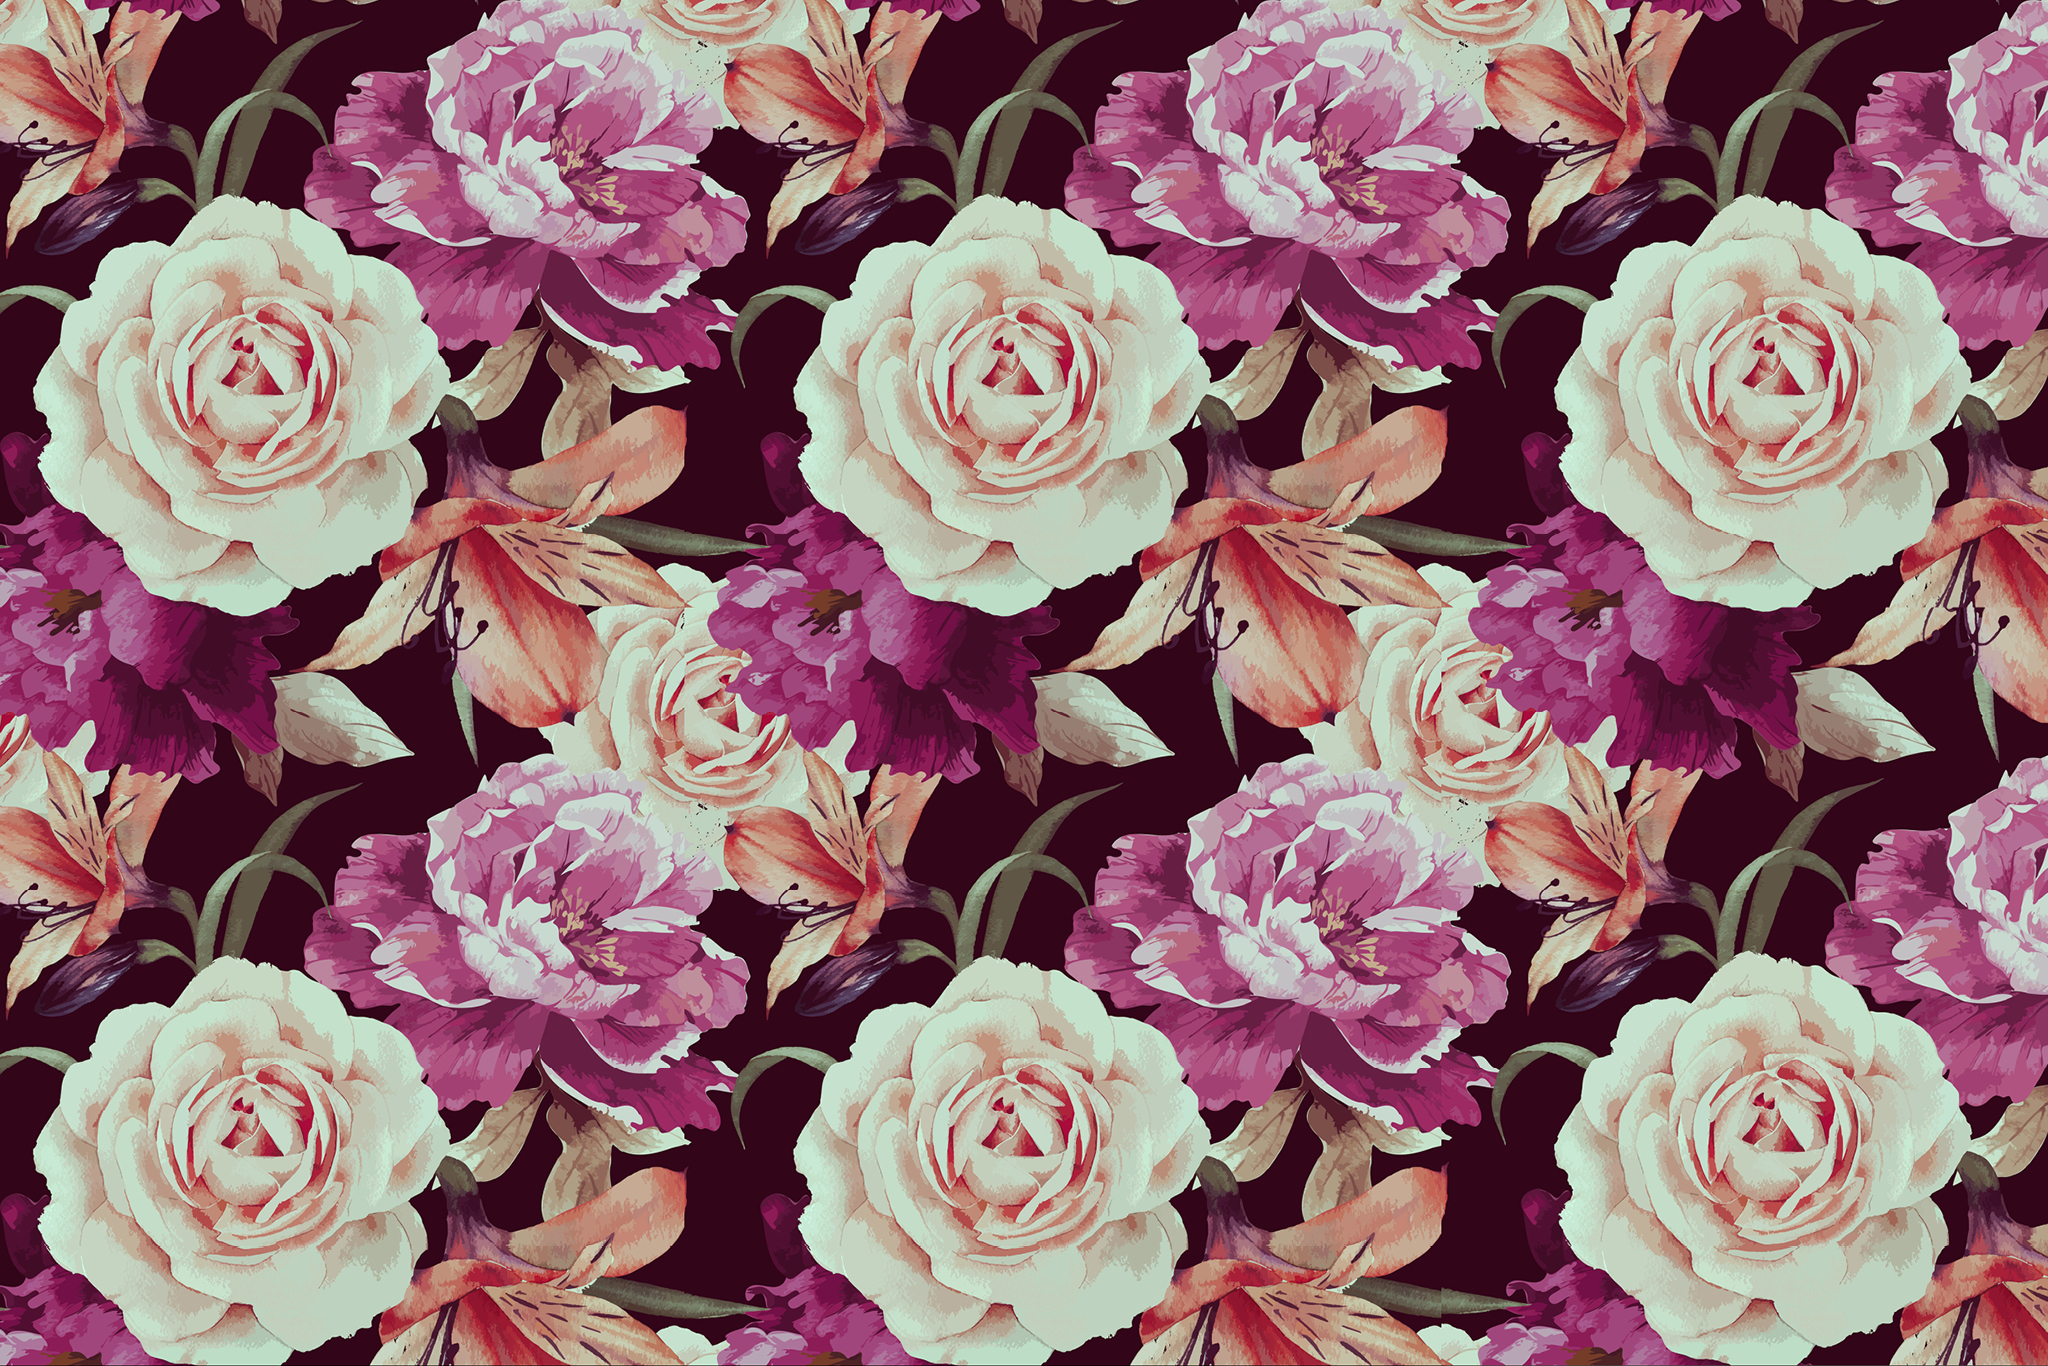 Floral Print Wallpapers for desktop and phone